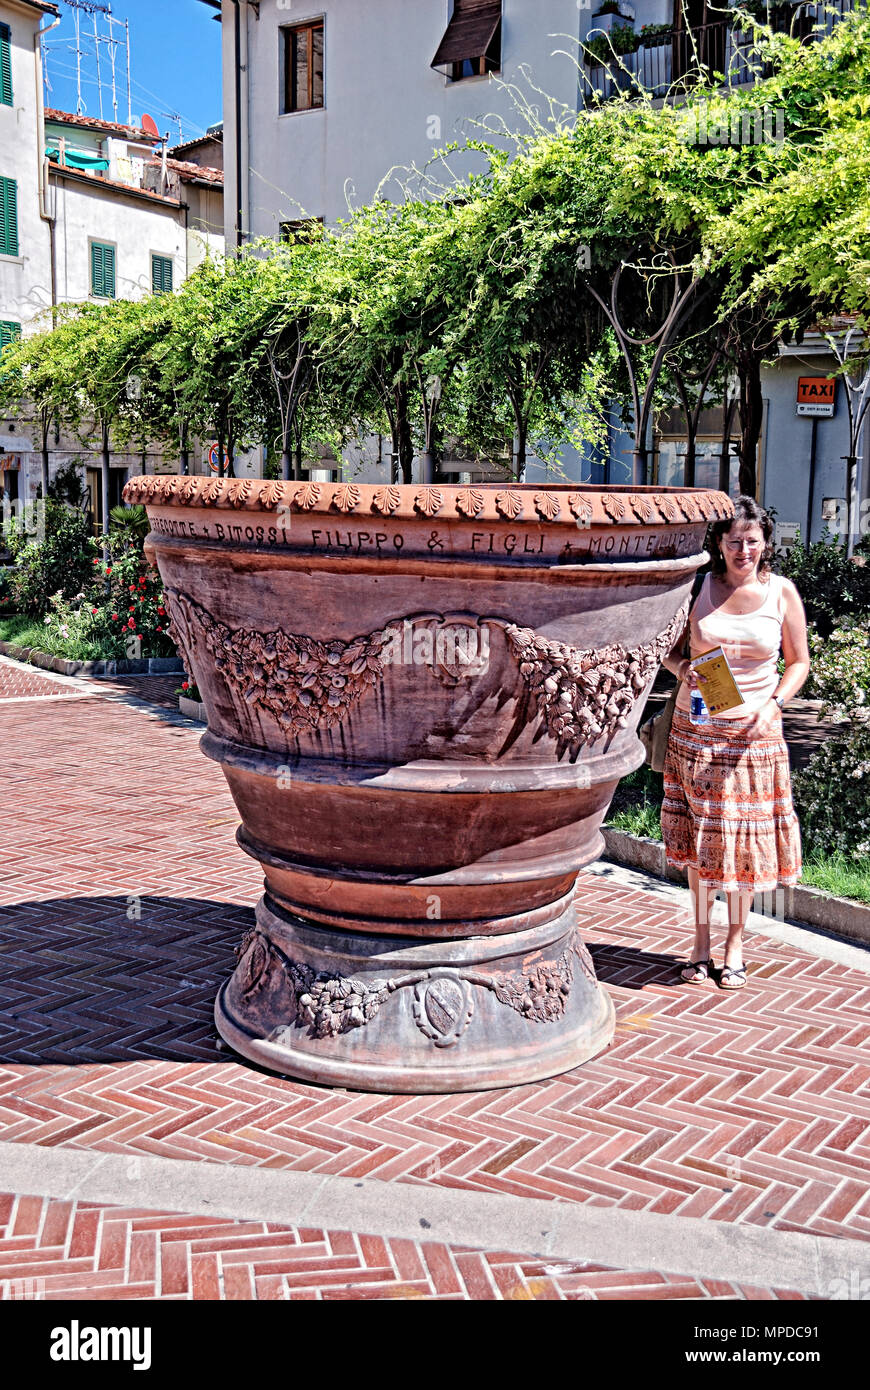 Enormous Flower Pot and Lady - Stock Image